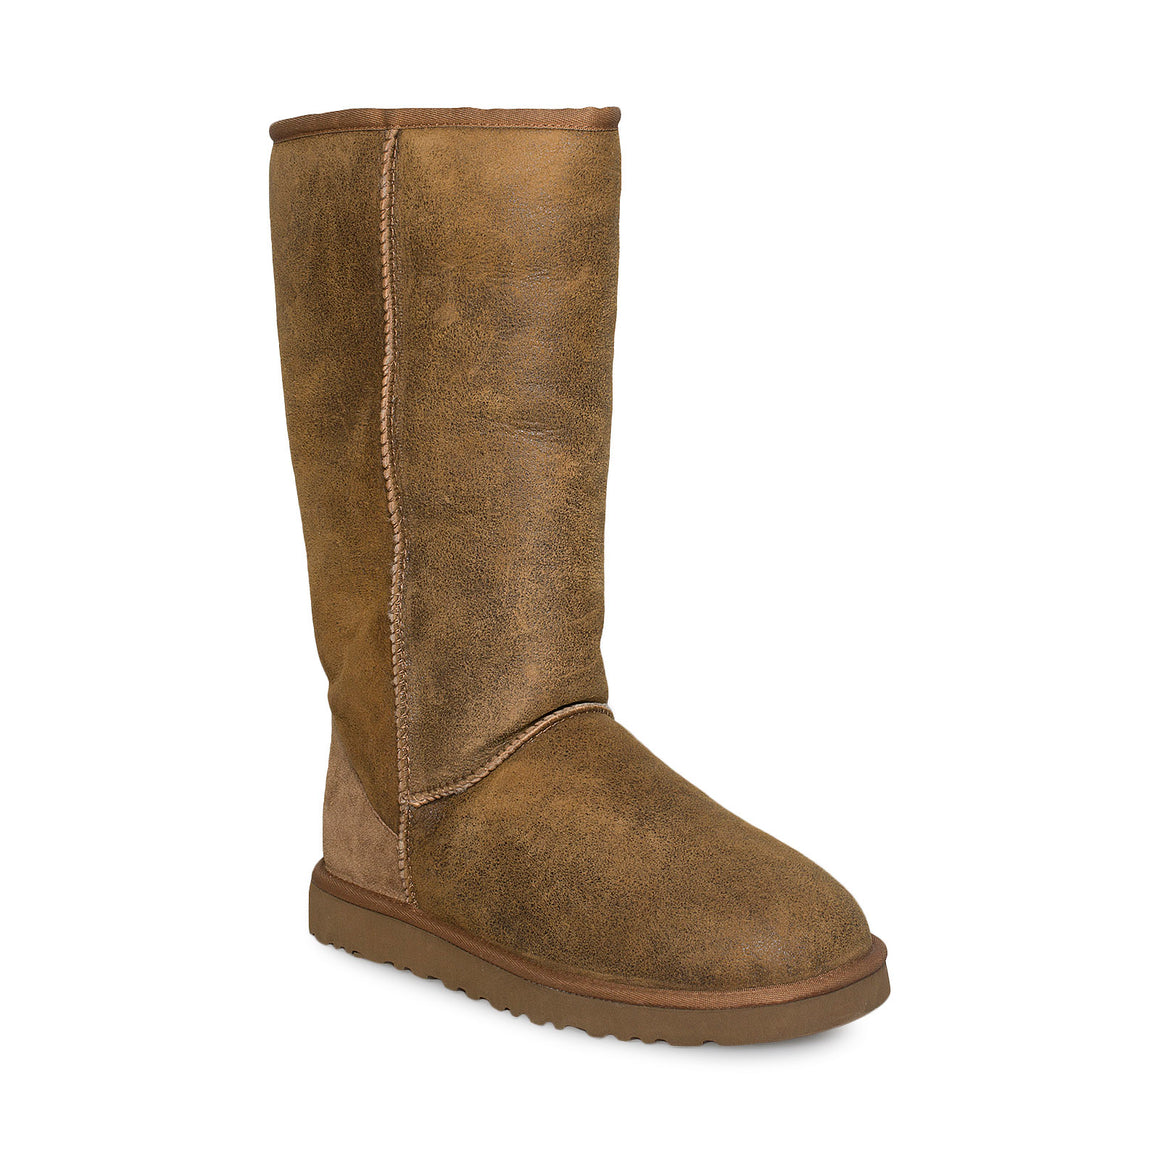 UGG Classic Tall Bomber Jacket Chestnut Boots - Women's